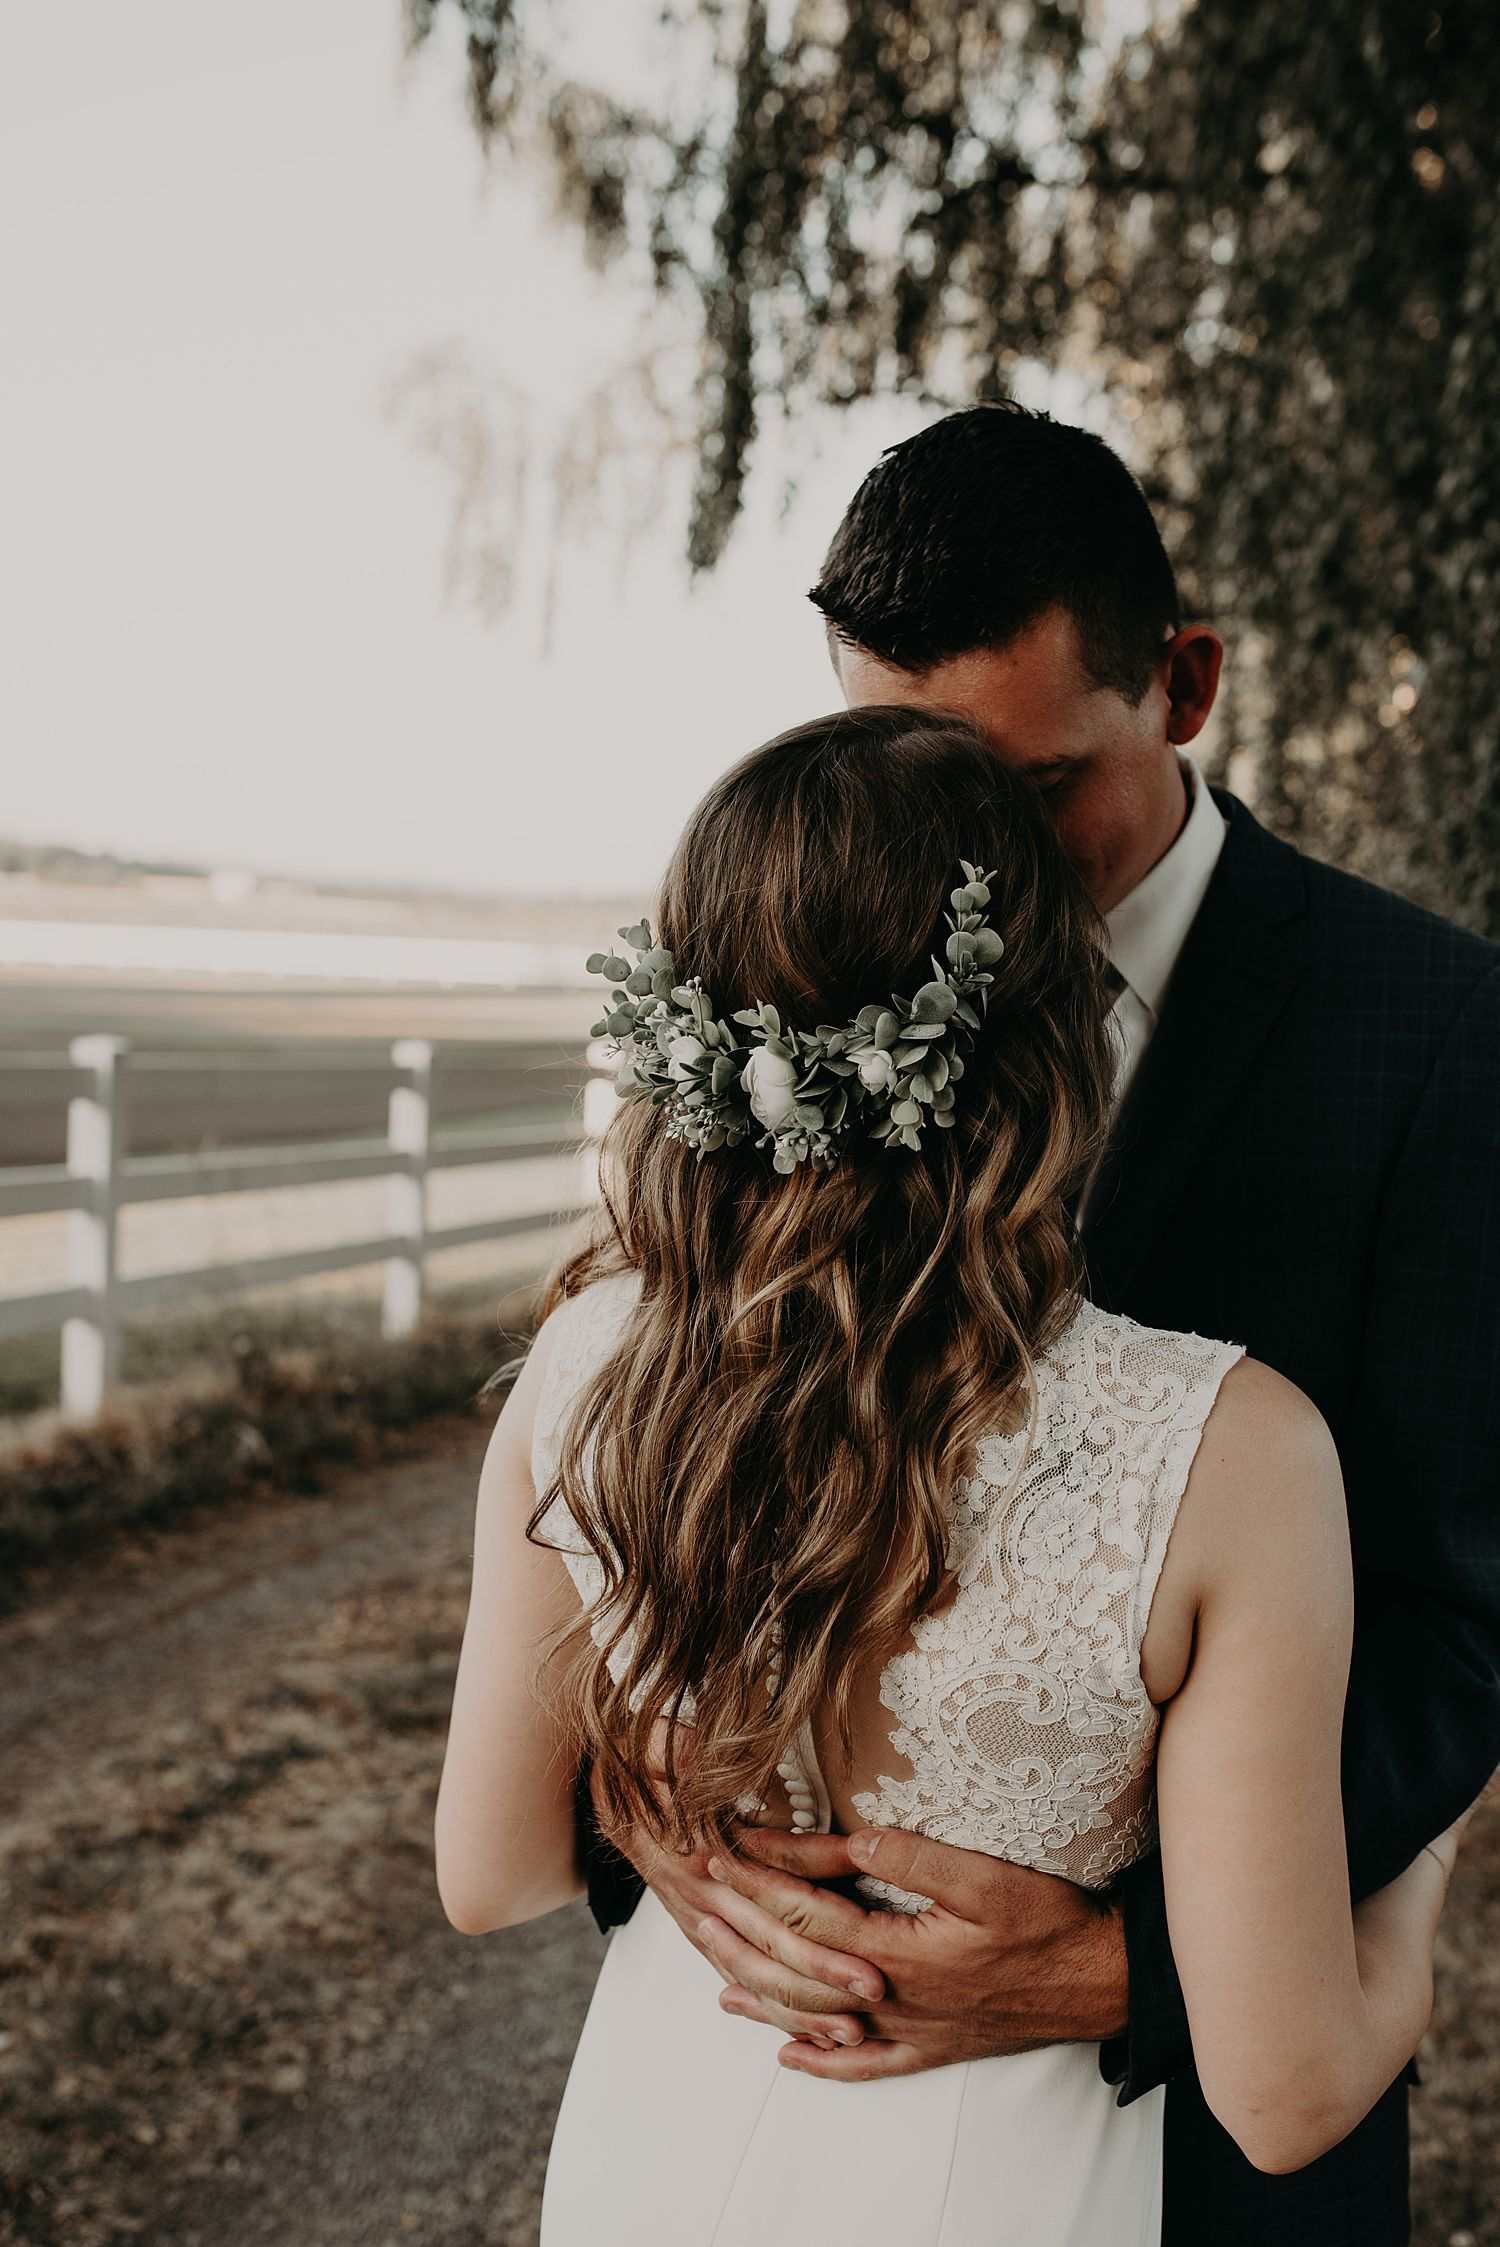 Kayla_Josh_Oregon_Wedding_July29_2018_0208.jpg